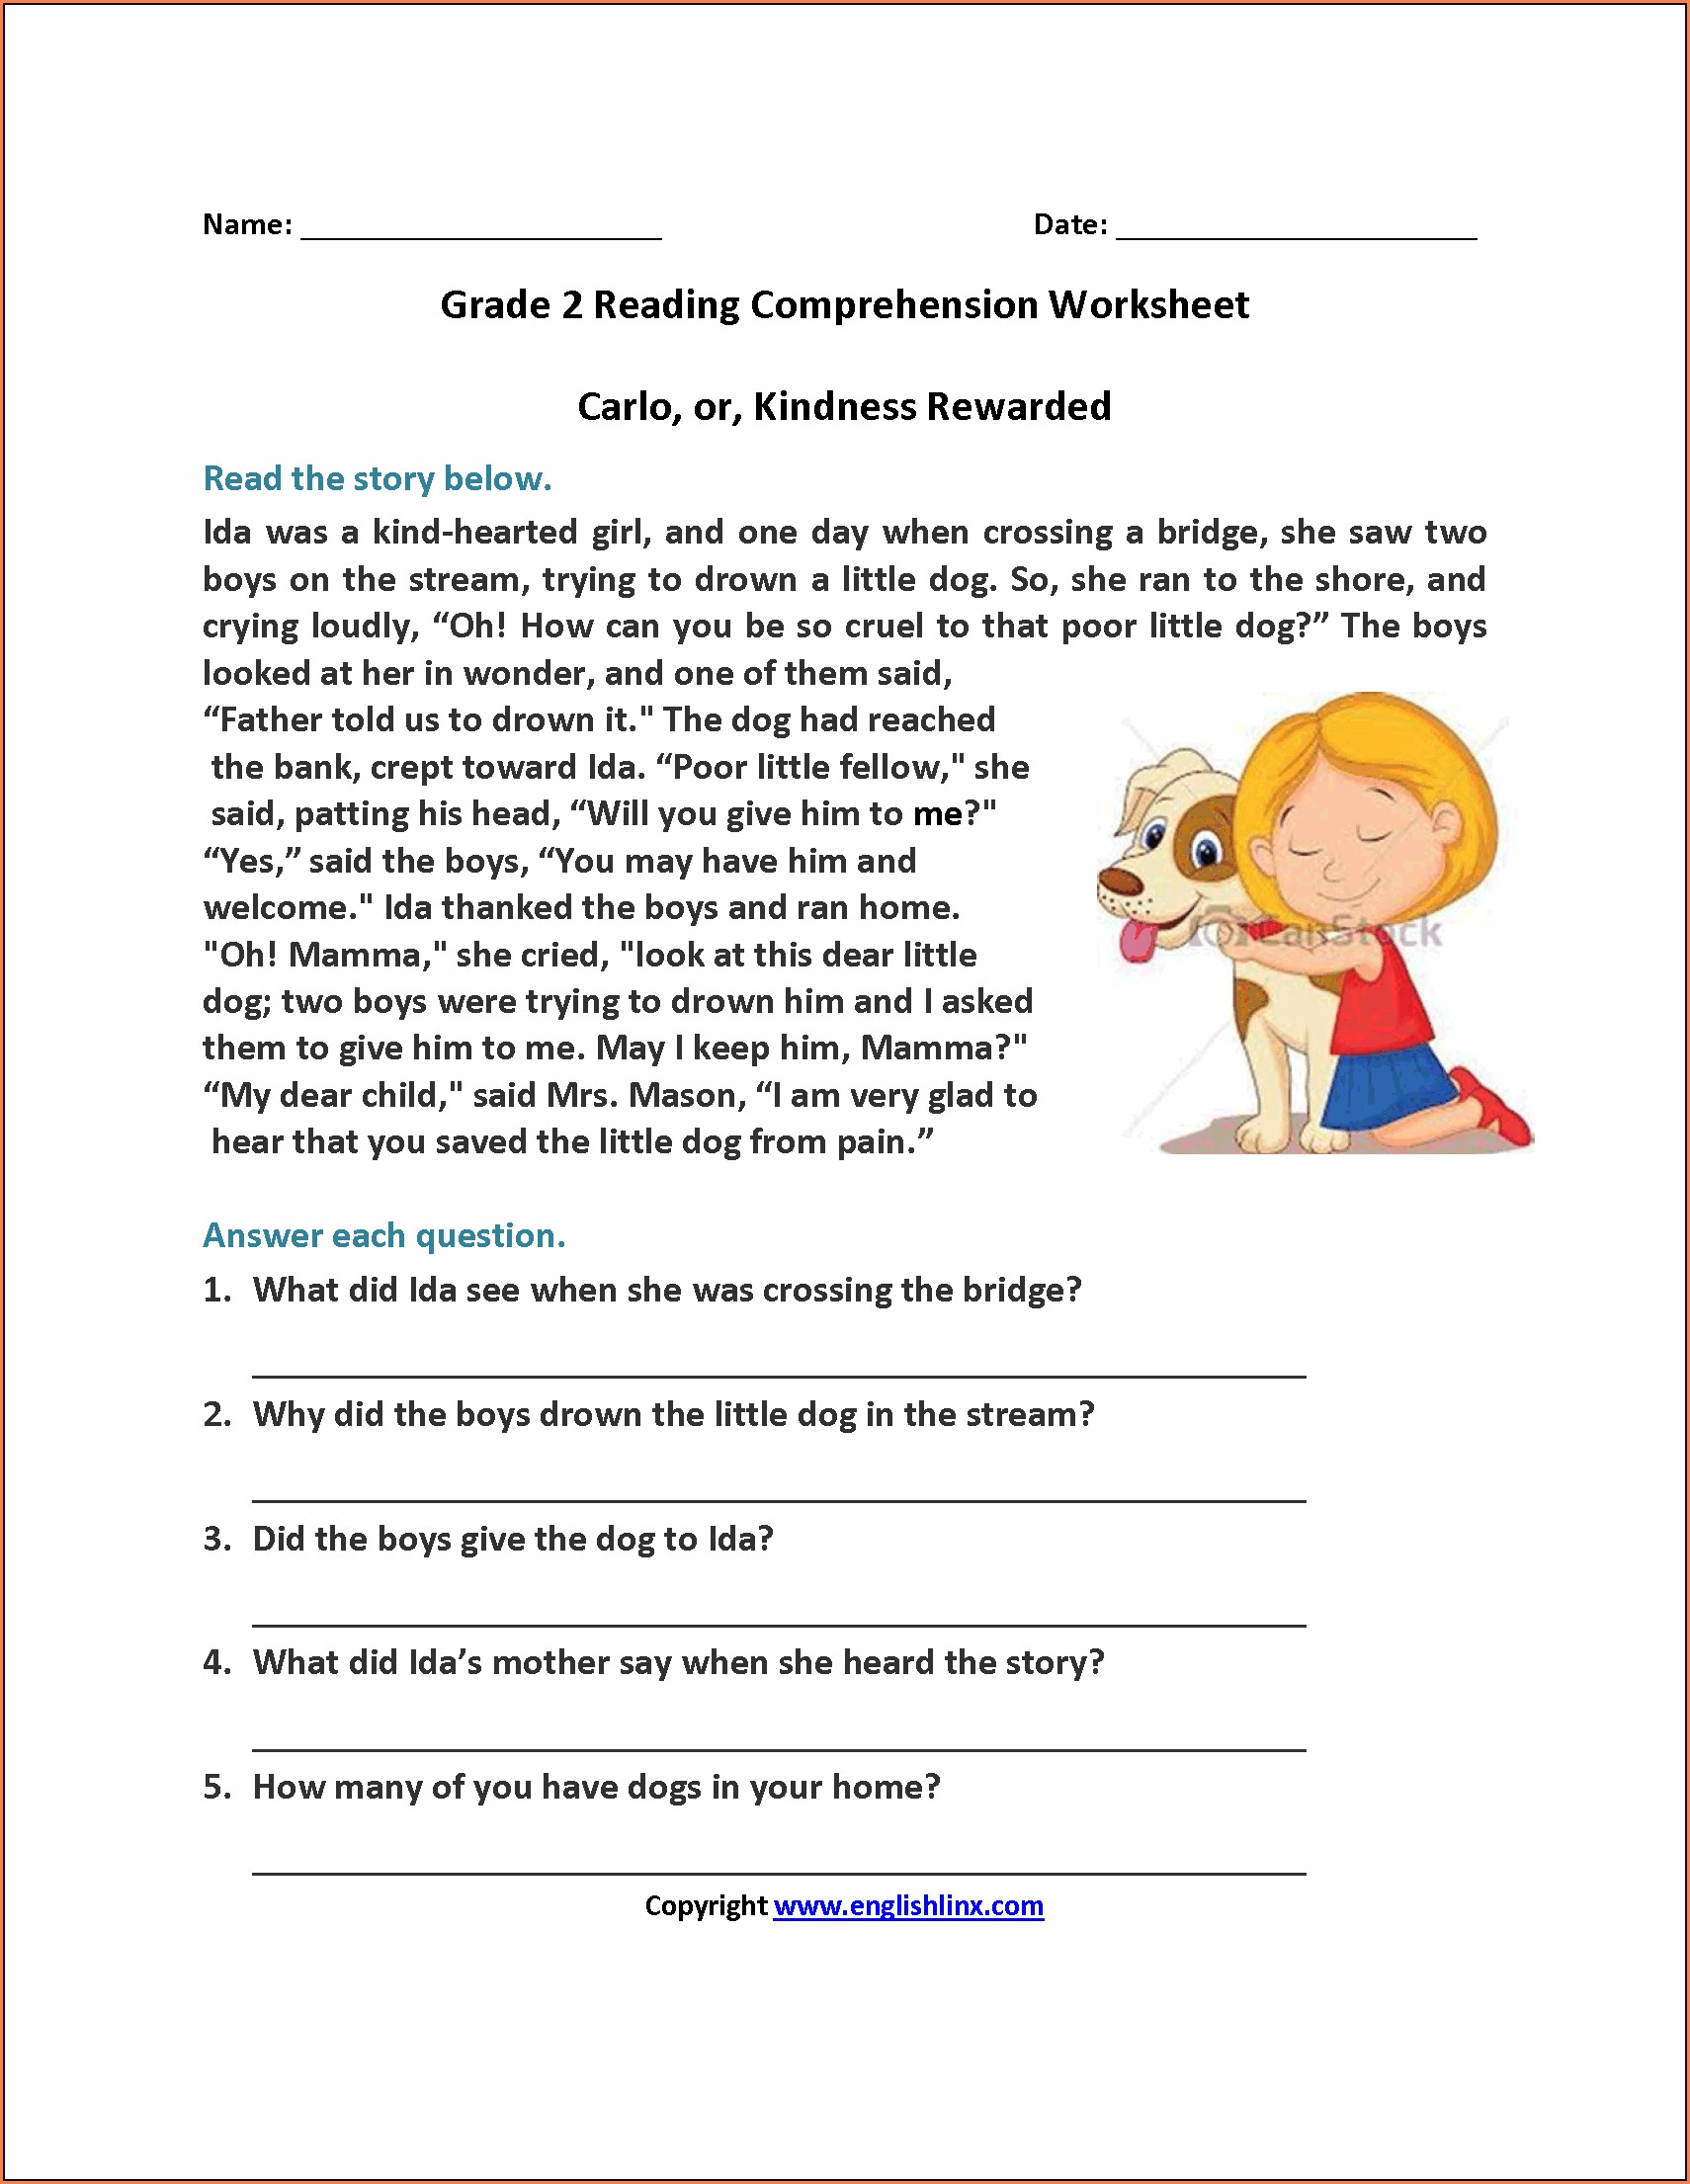 Second Grade Reading Comprehension Worksheets For 2nd Grade